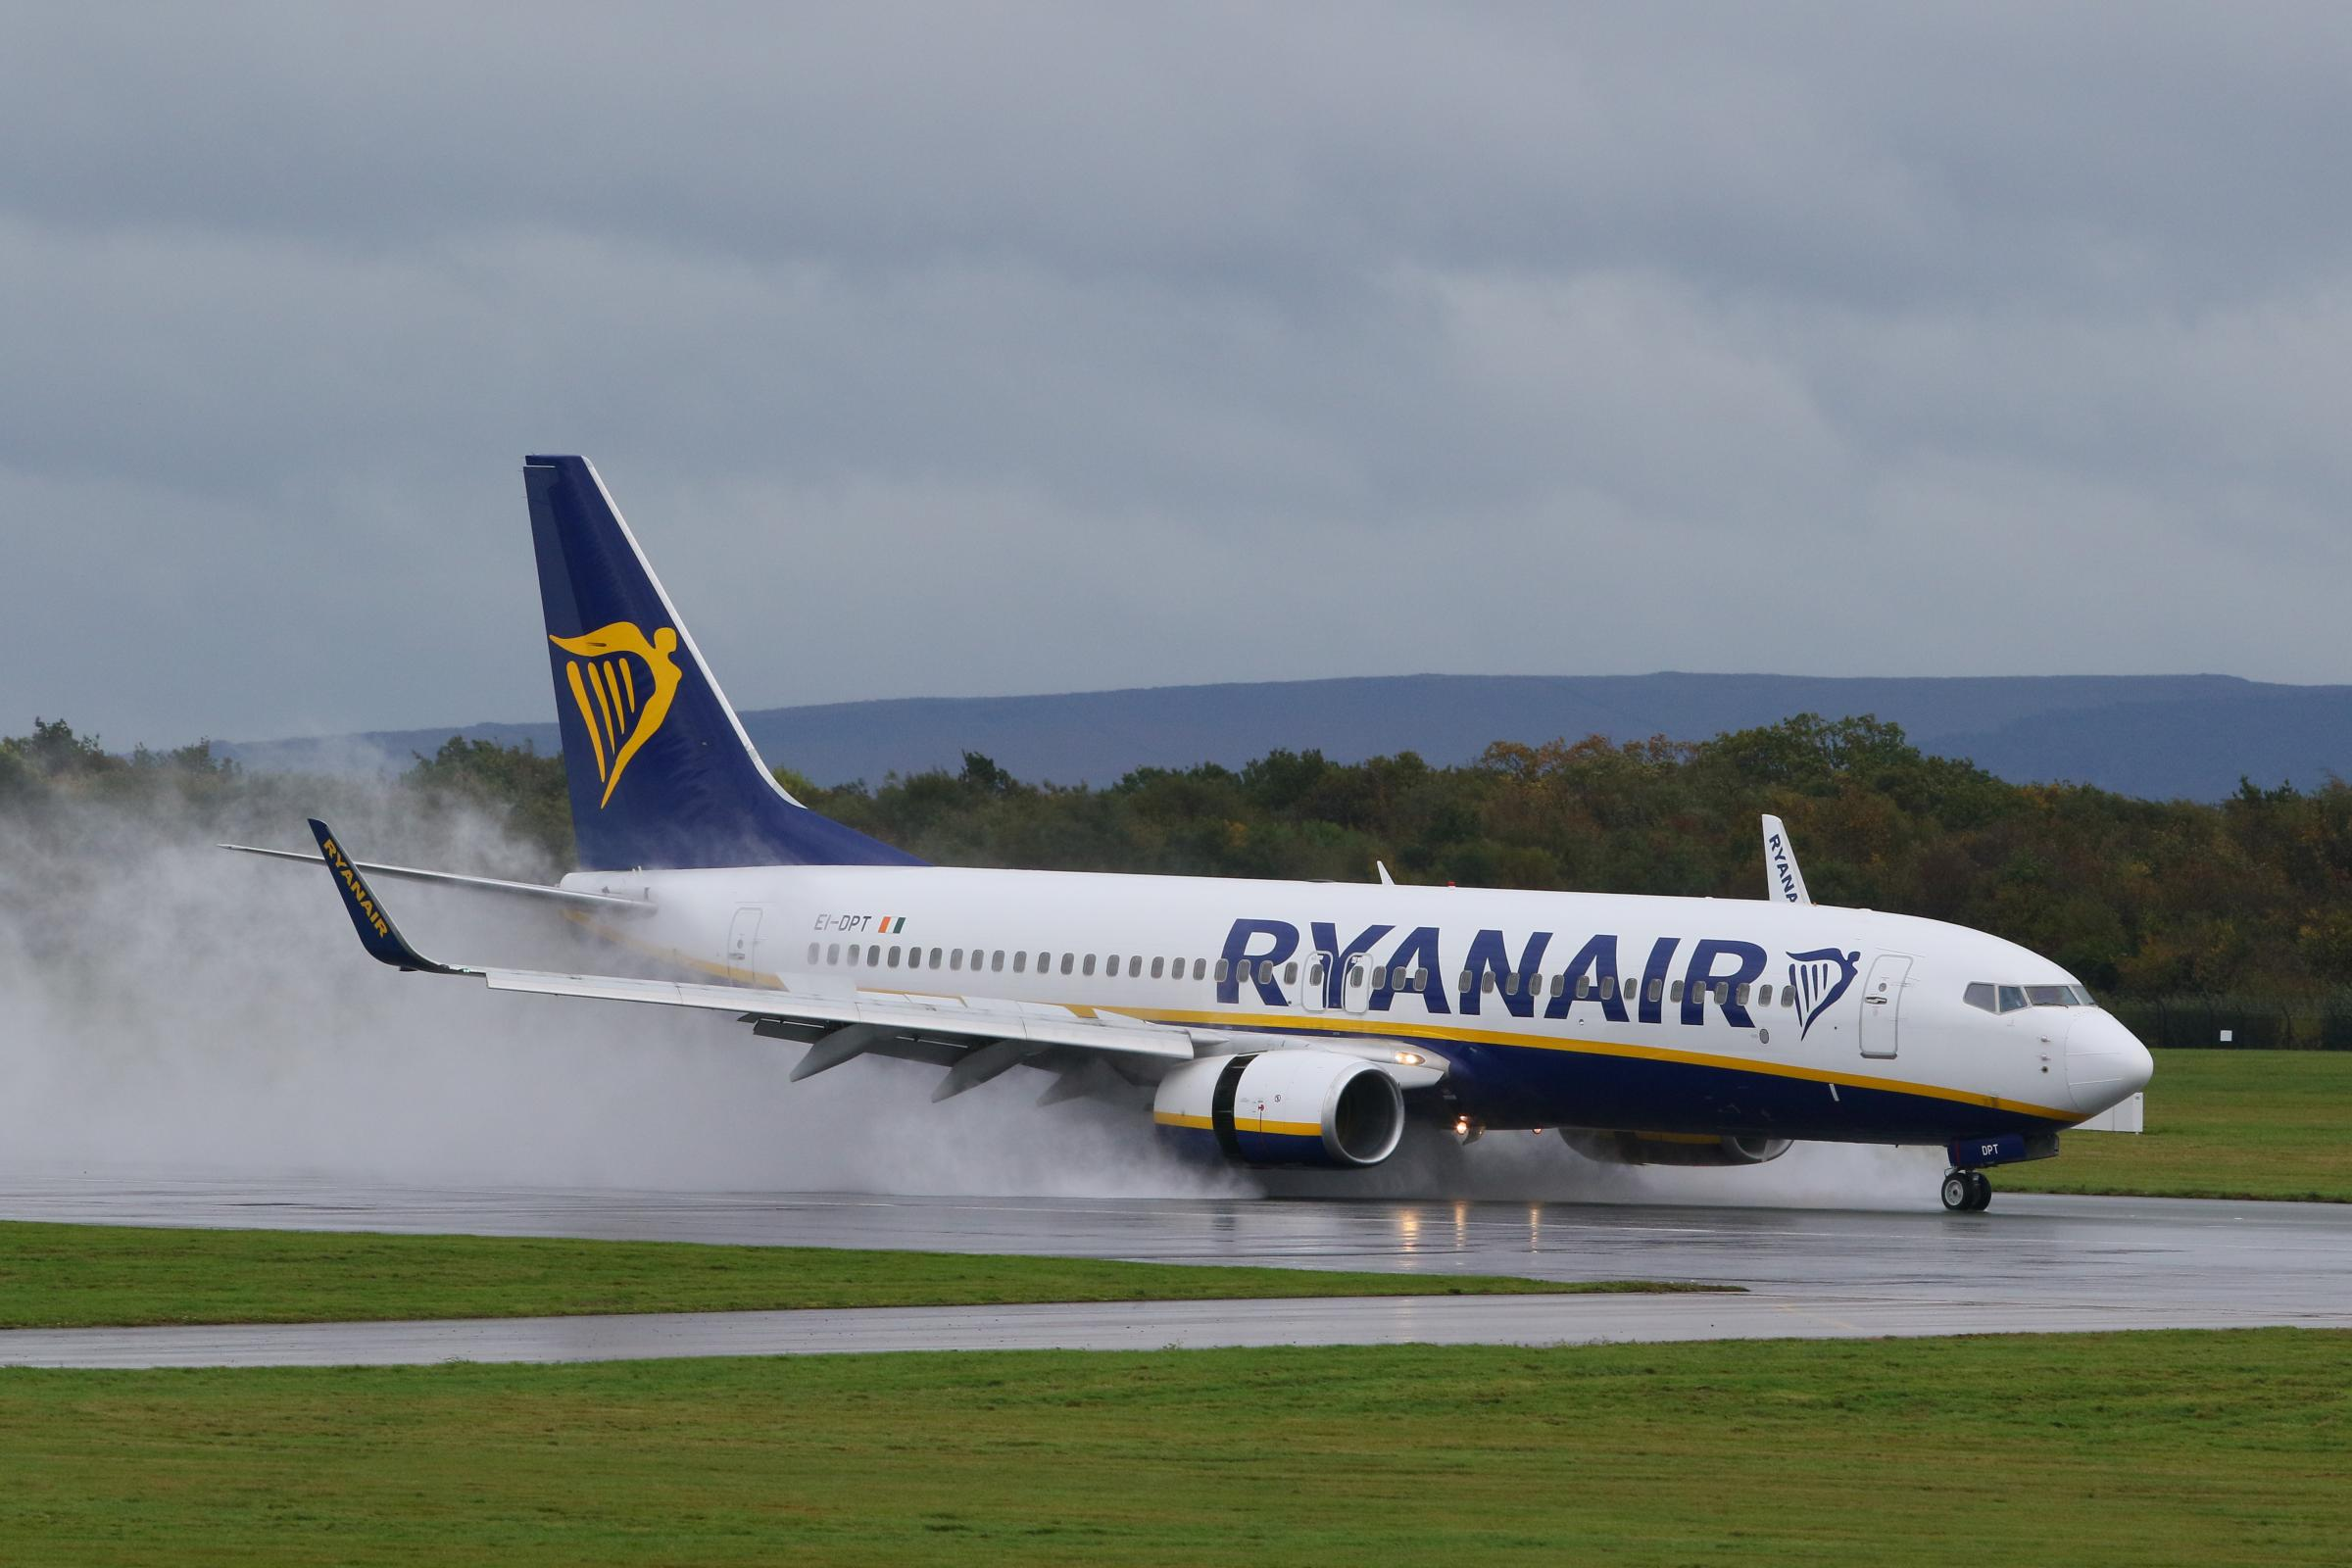 Ryanair 'to ban disruptive passengers' after racist rant goes viral